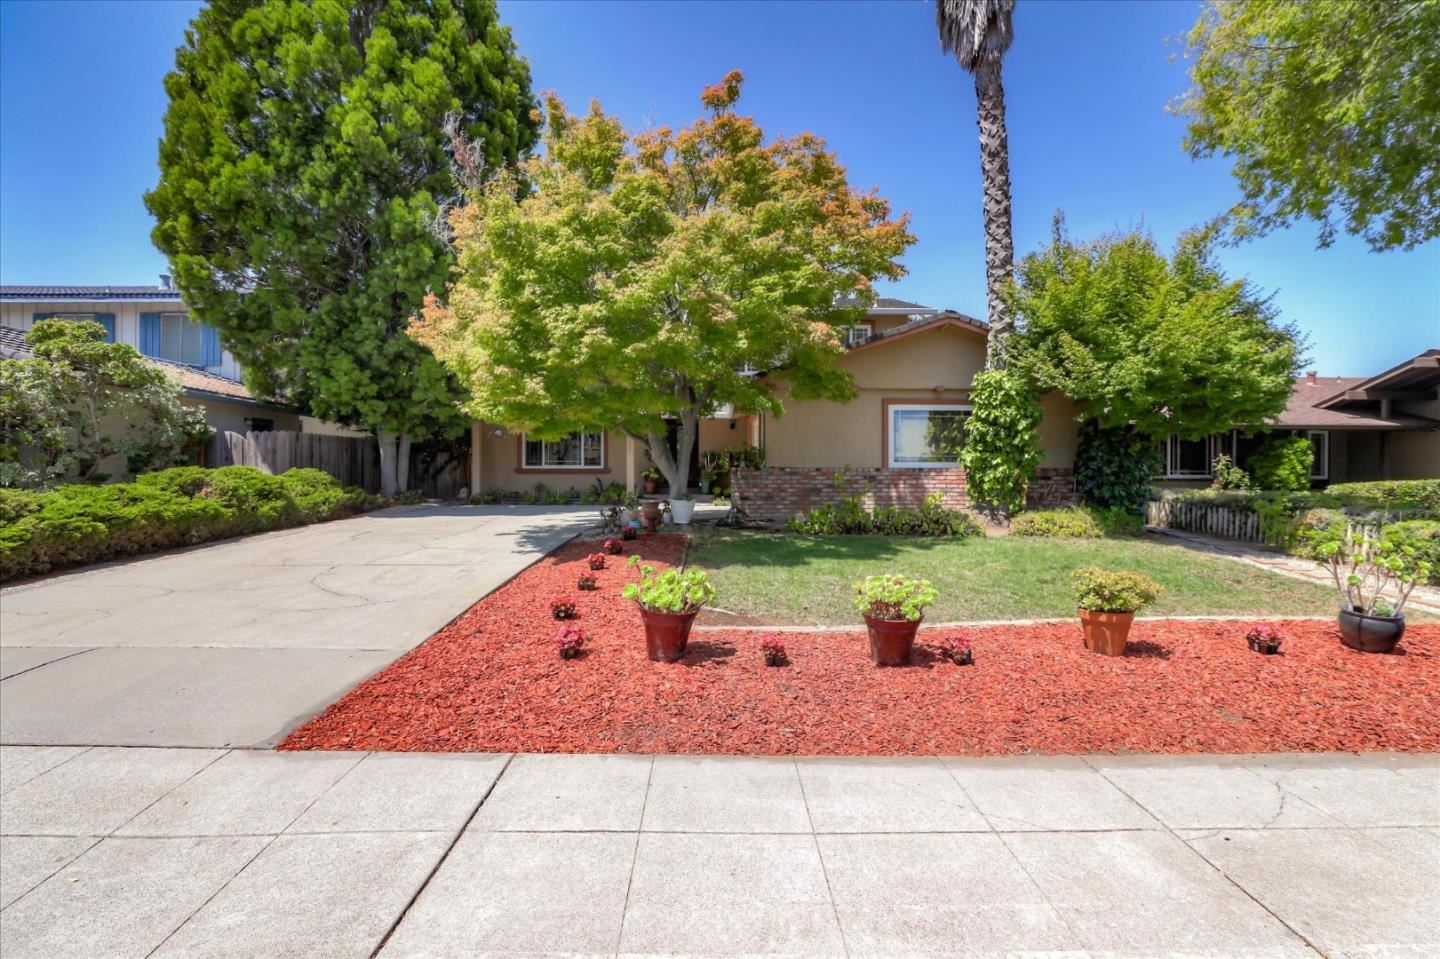 Photo for 1259 Rousseau DR, SUNNYVALE, CA 94087 (MLS # ML81803940)